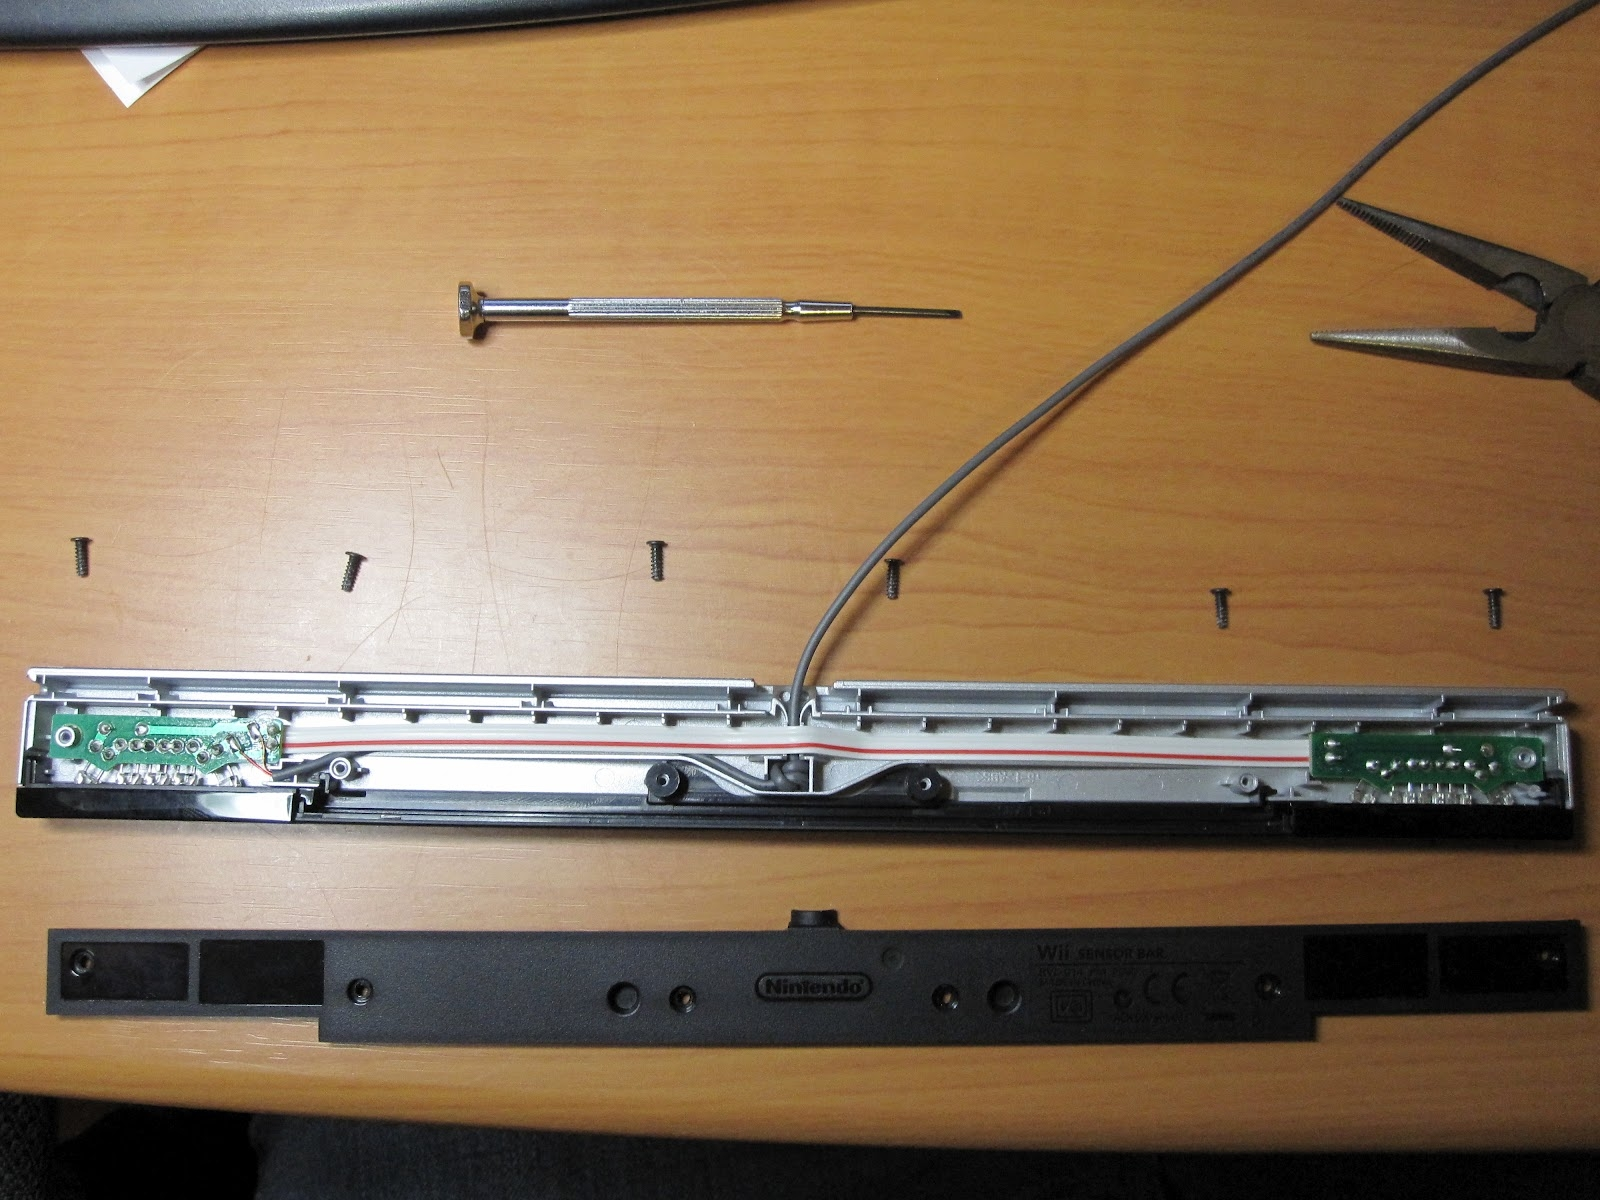 wii sensor bar wiring diagram Collection-wii sensor bar wiring diagram Collection free wiring diagram Img 0658 of Nintendo Wii Wiring DOWNLOAD Wiring Diagram Detail Name wii sensor bar 9-p